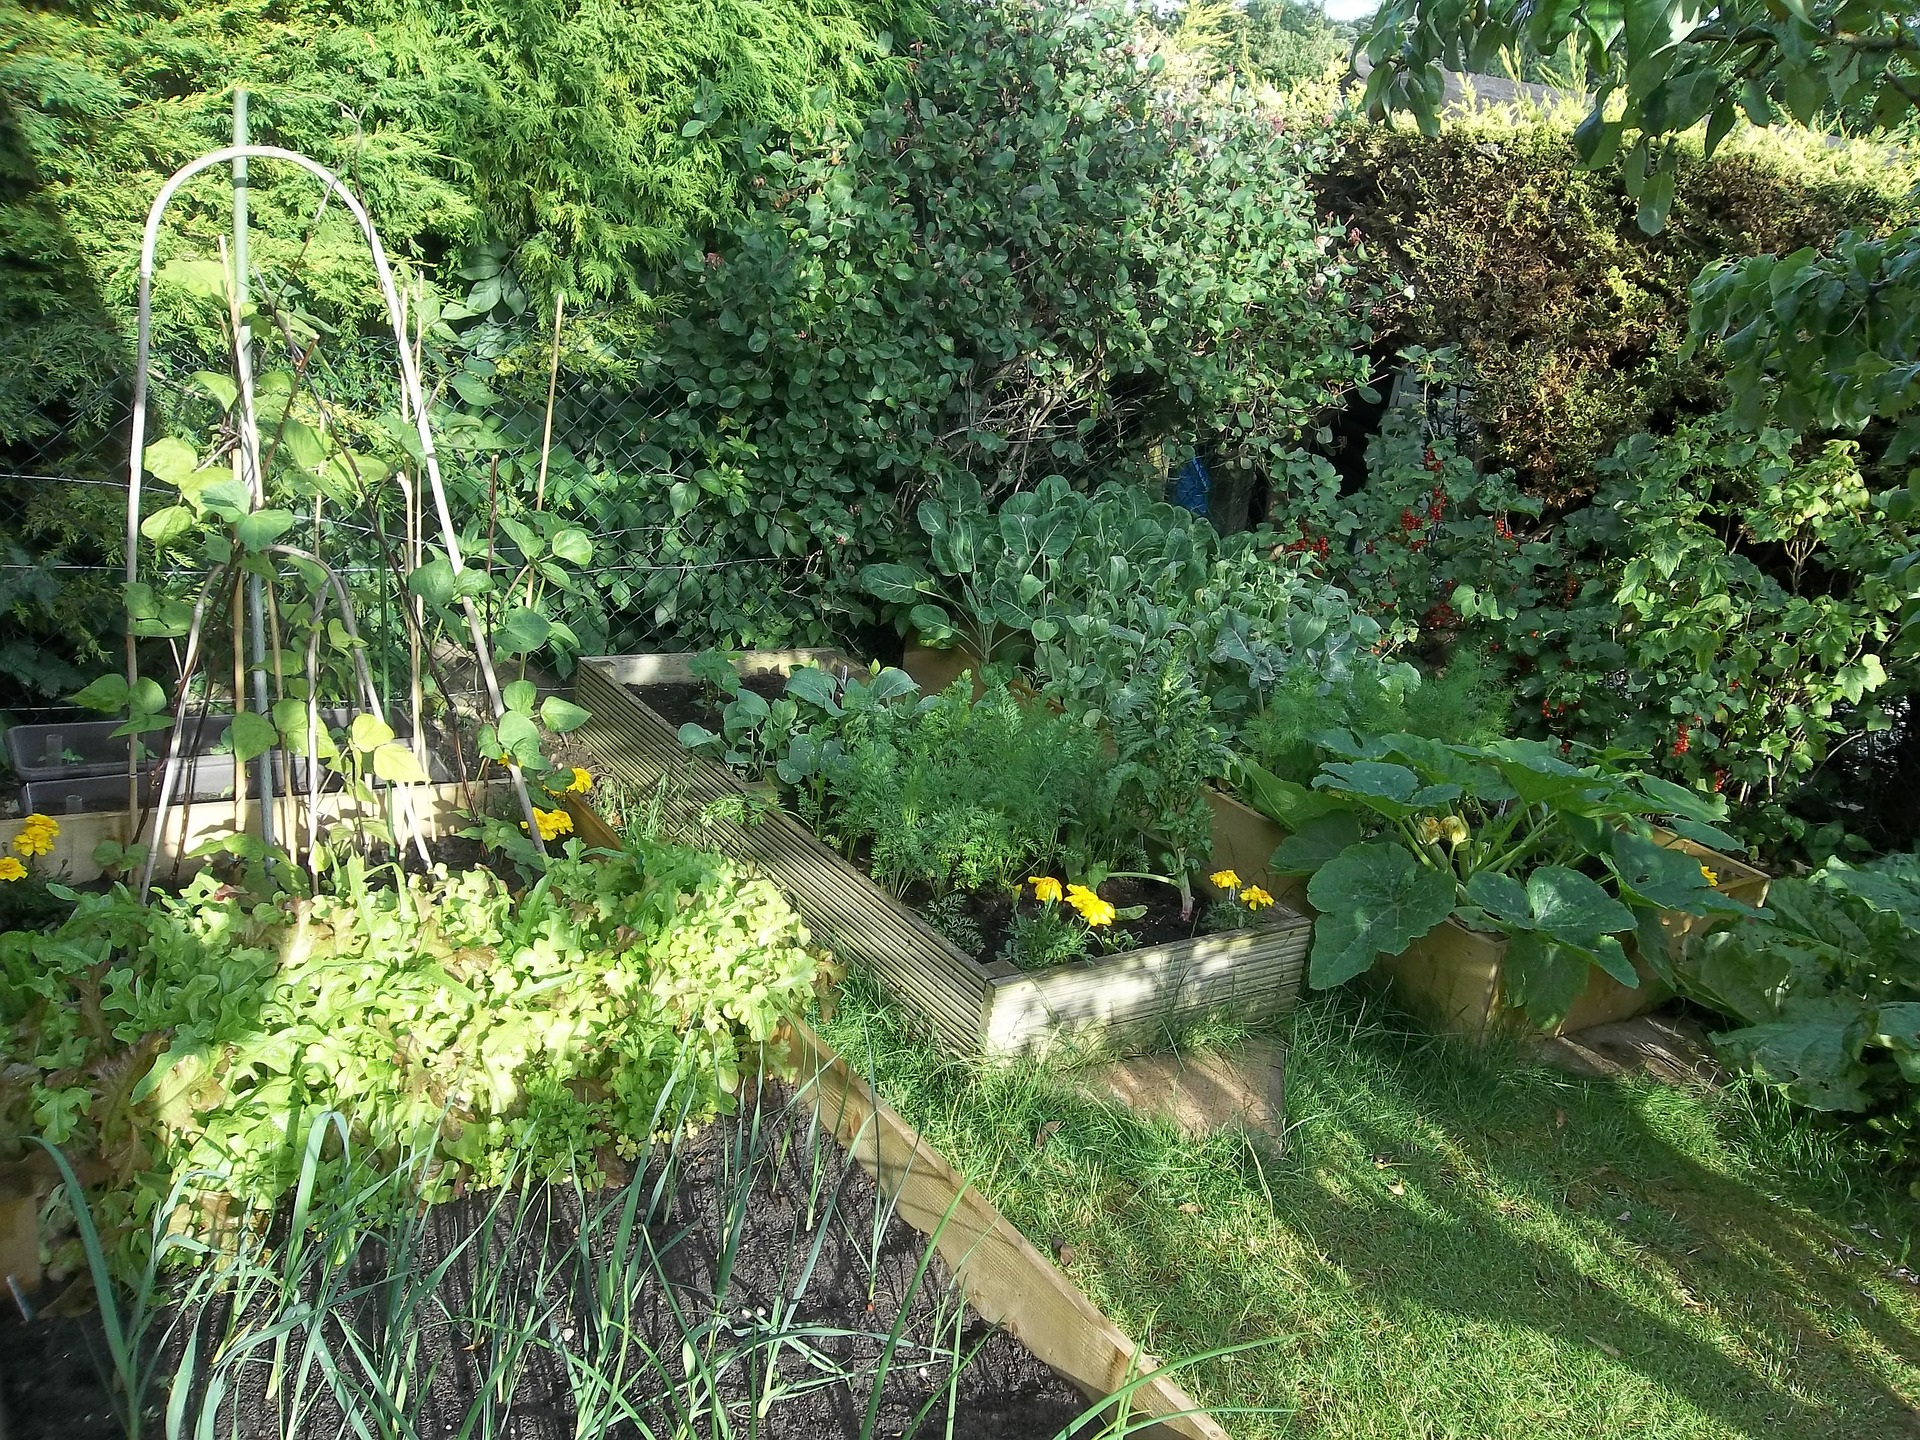 How To Plant Your Own Organic Garden This Summer